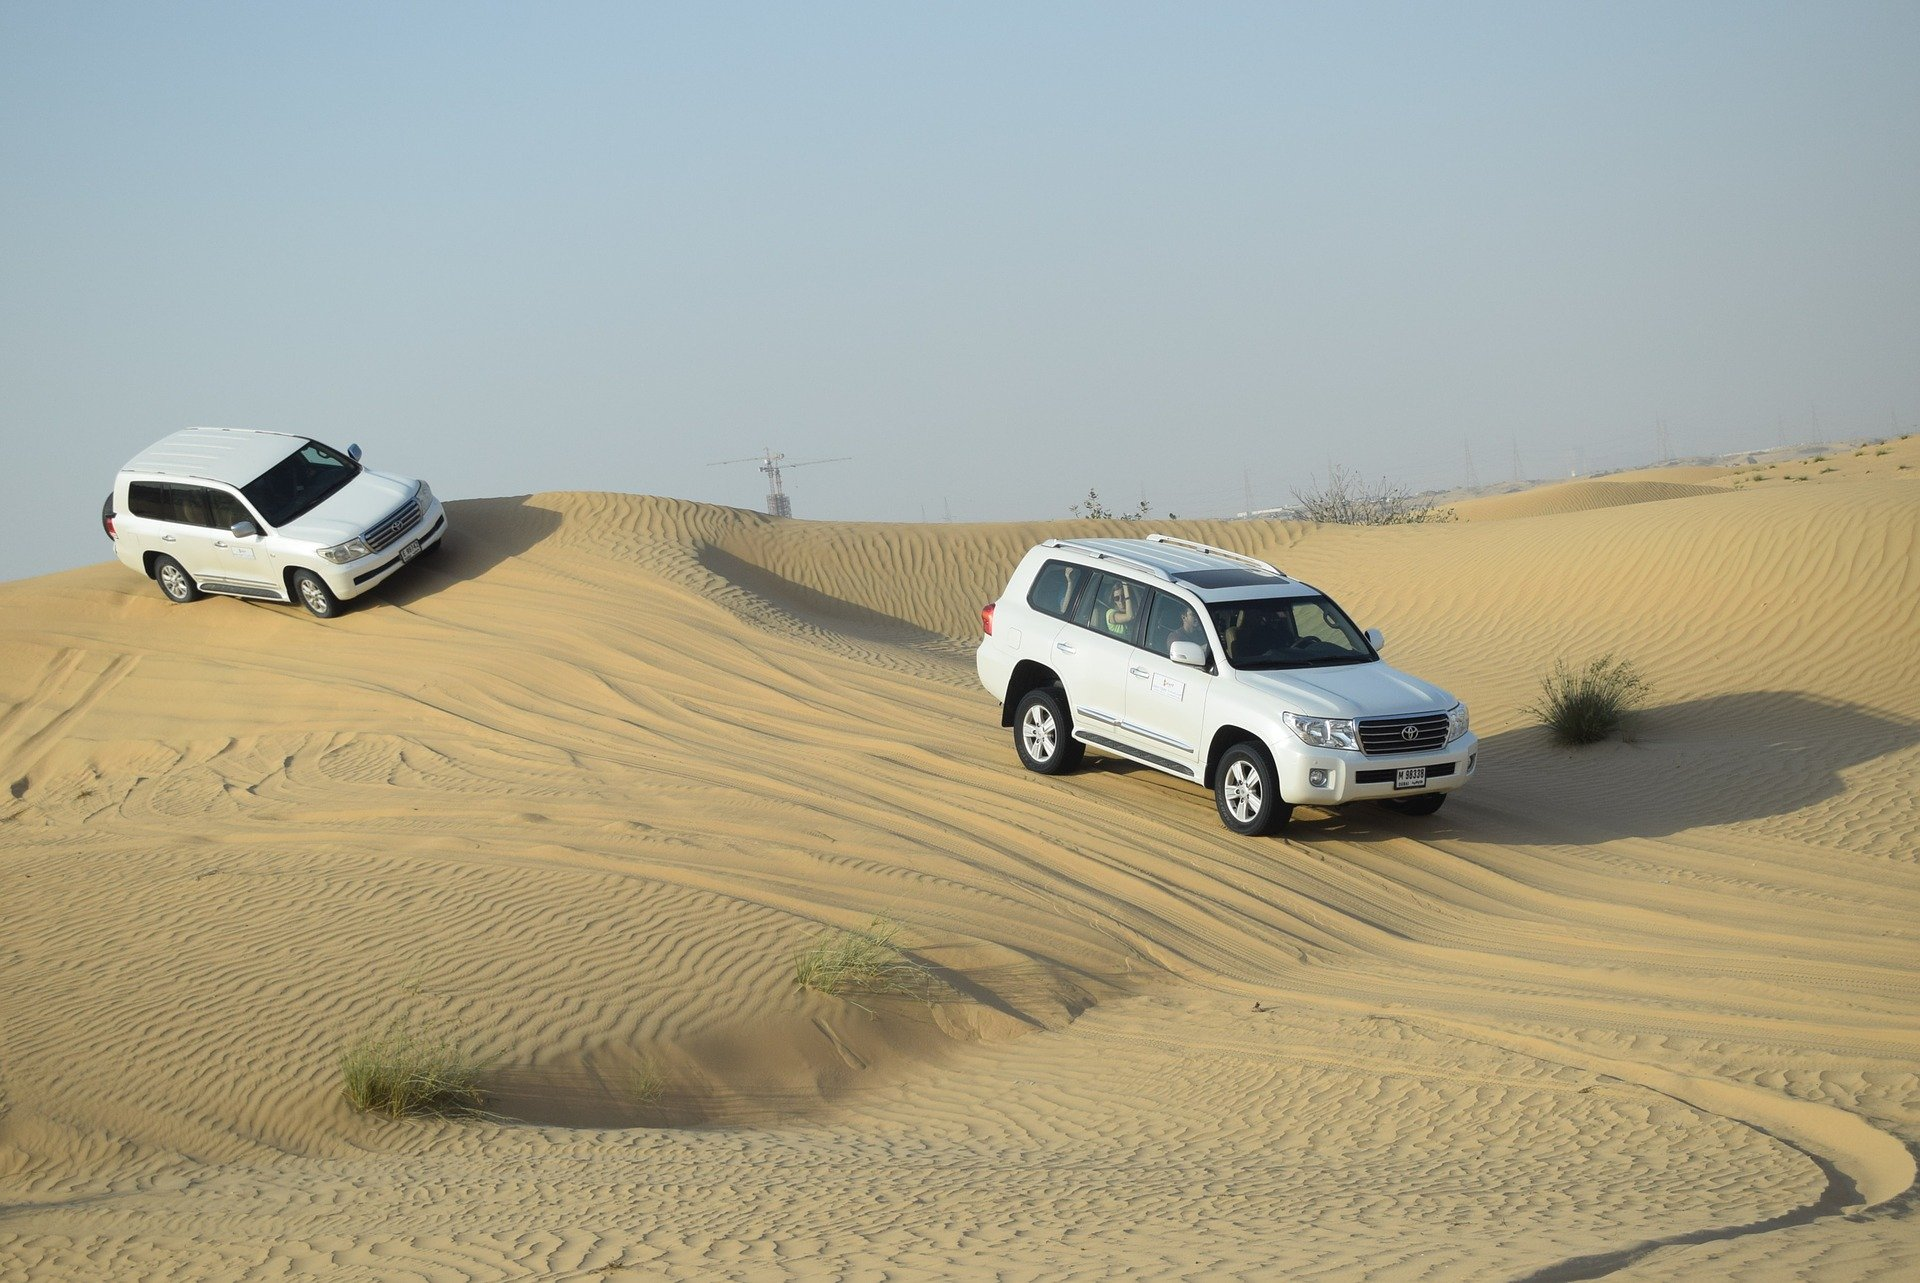 Driving in the sand dunes in the Emirates